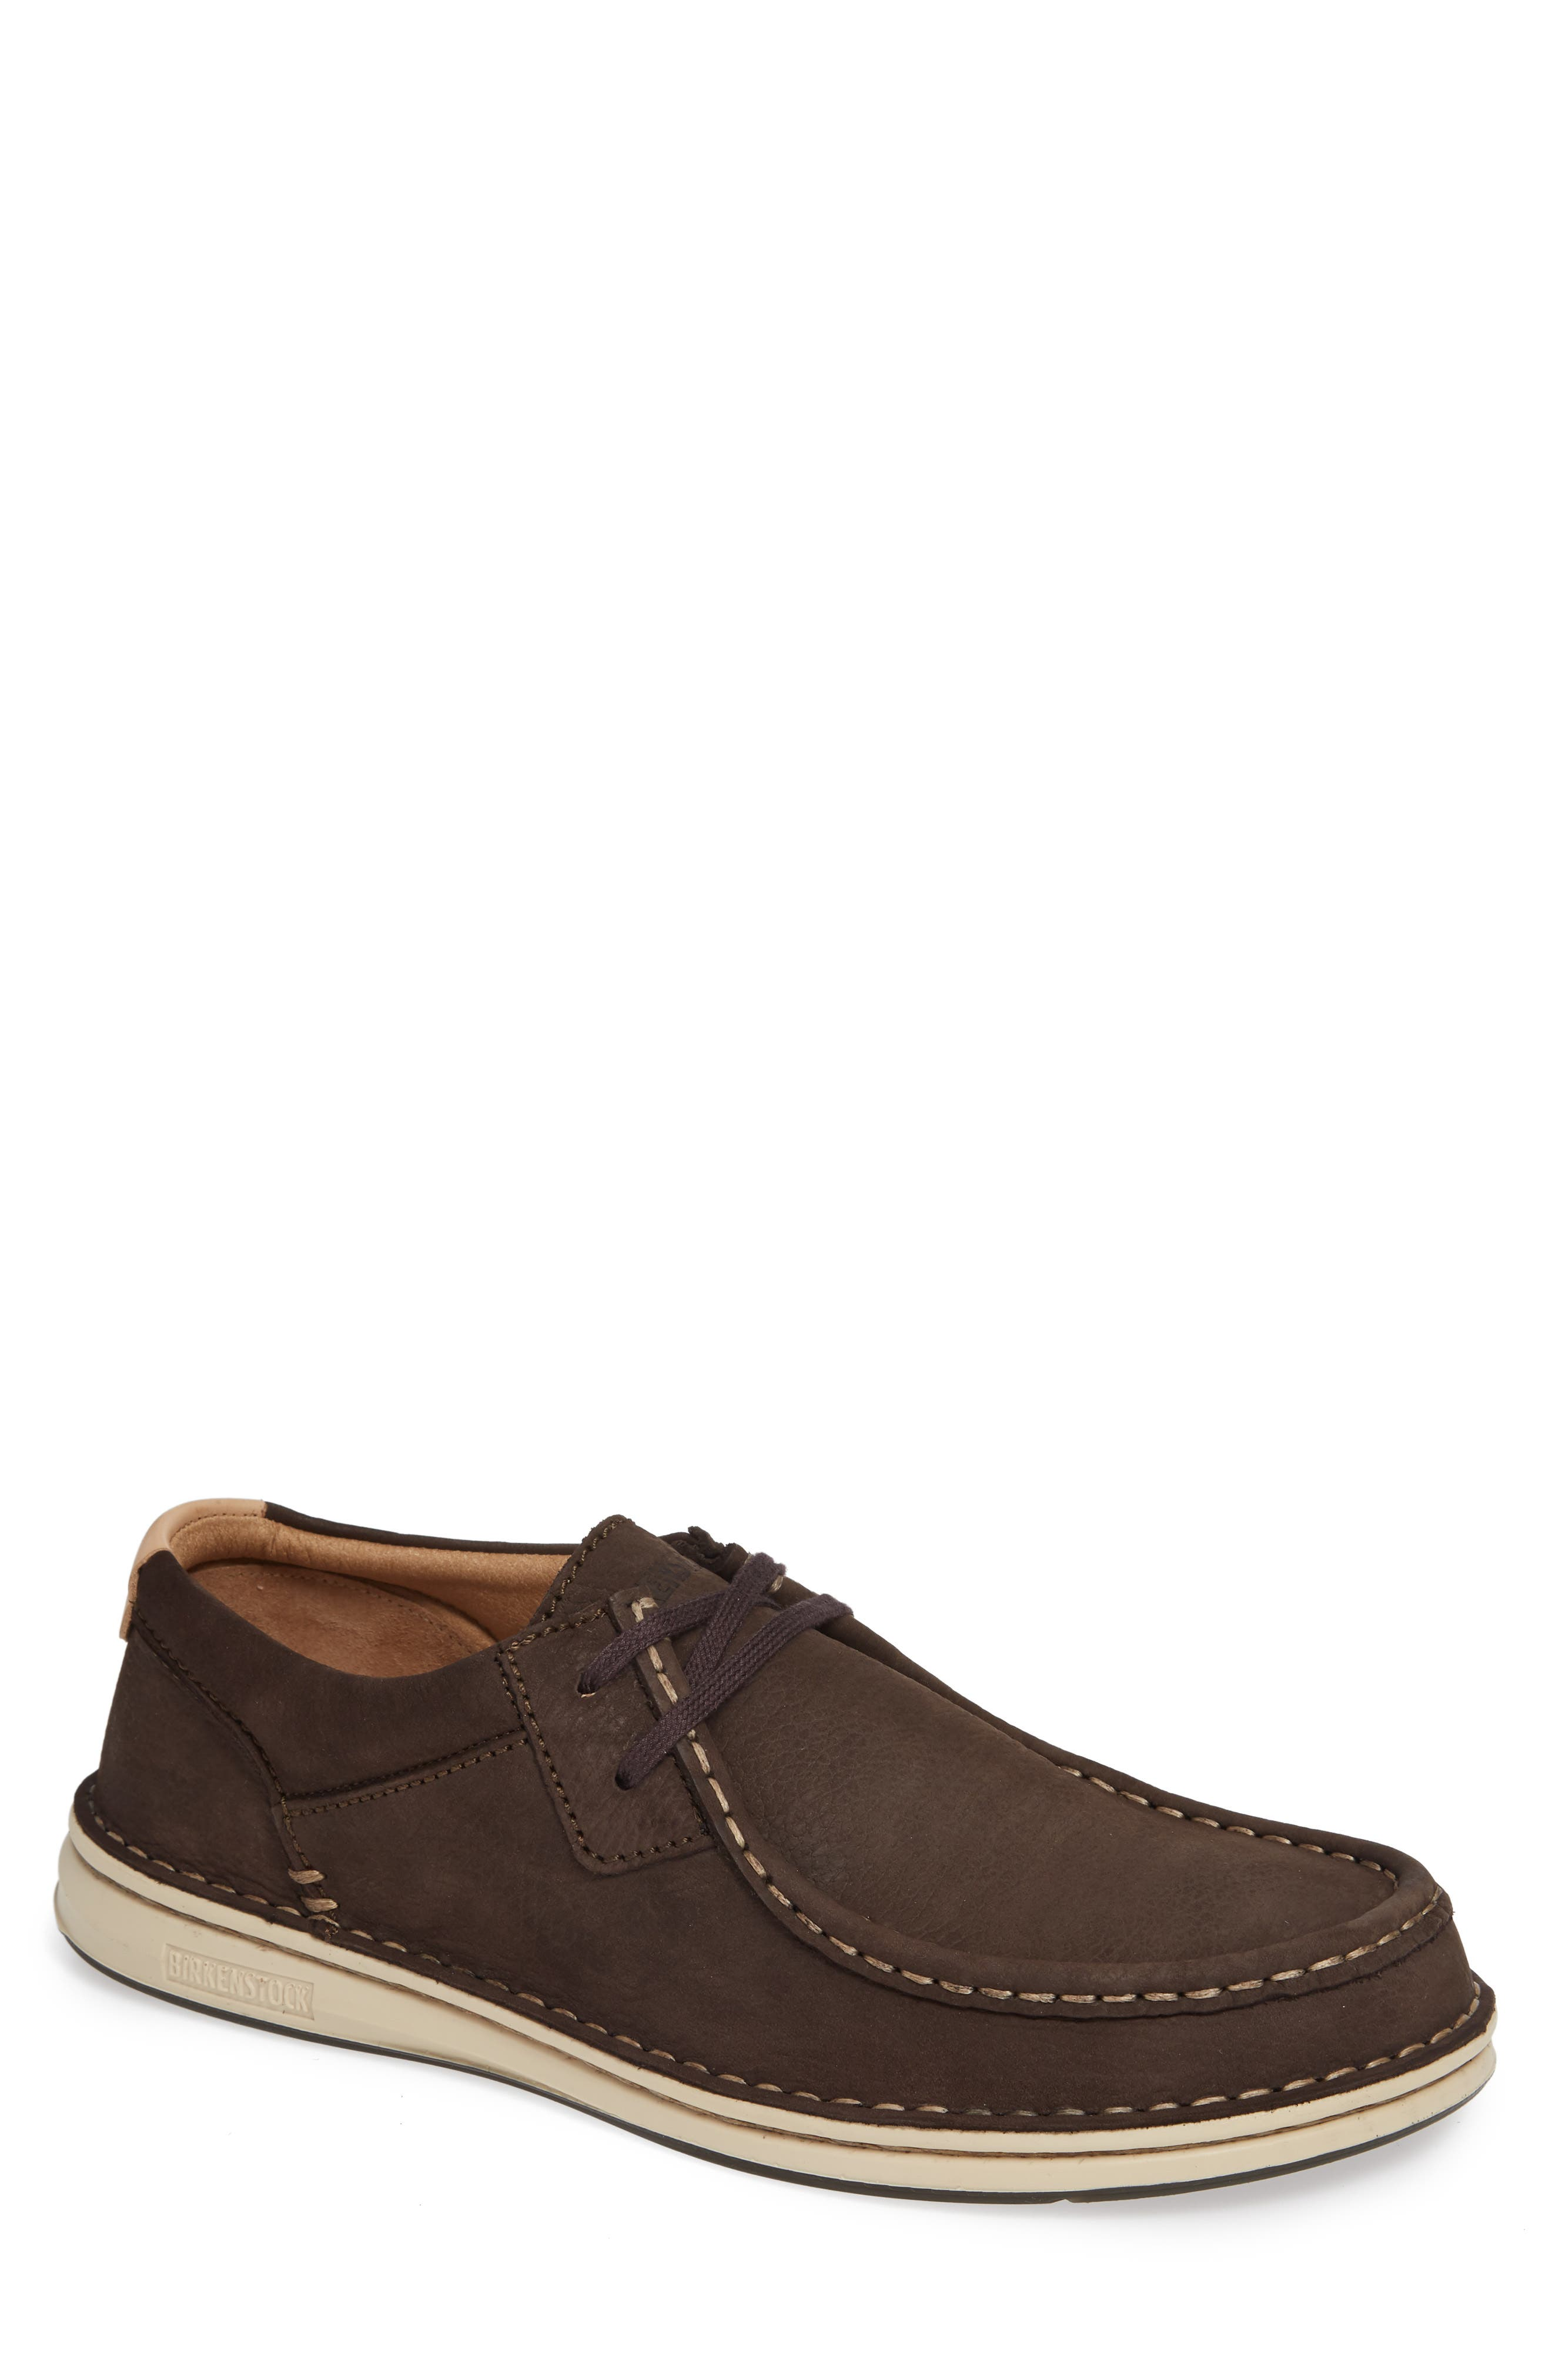 'Pasadena' Lace-Up Moccasin,                         Main,                         color, BROWN